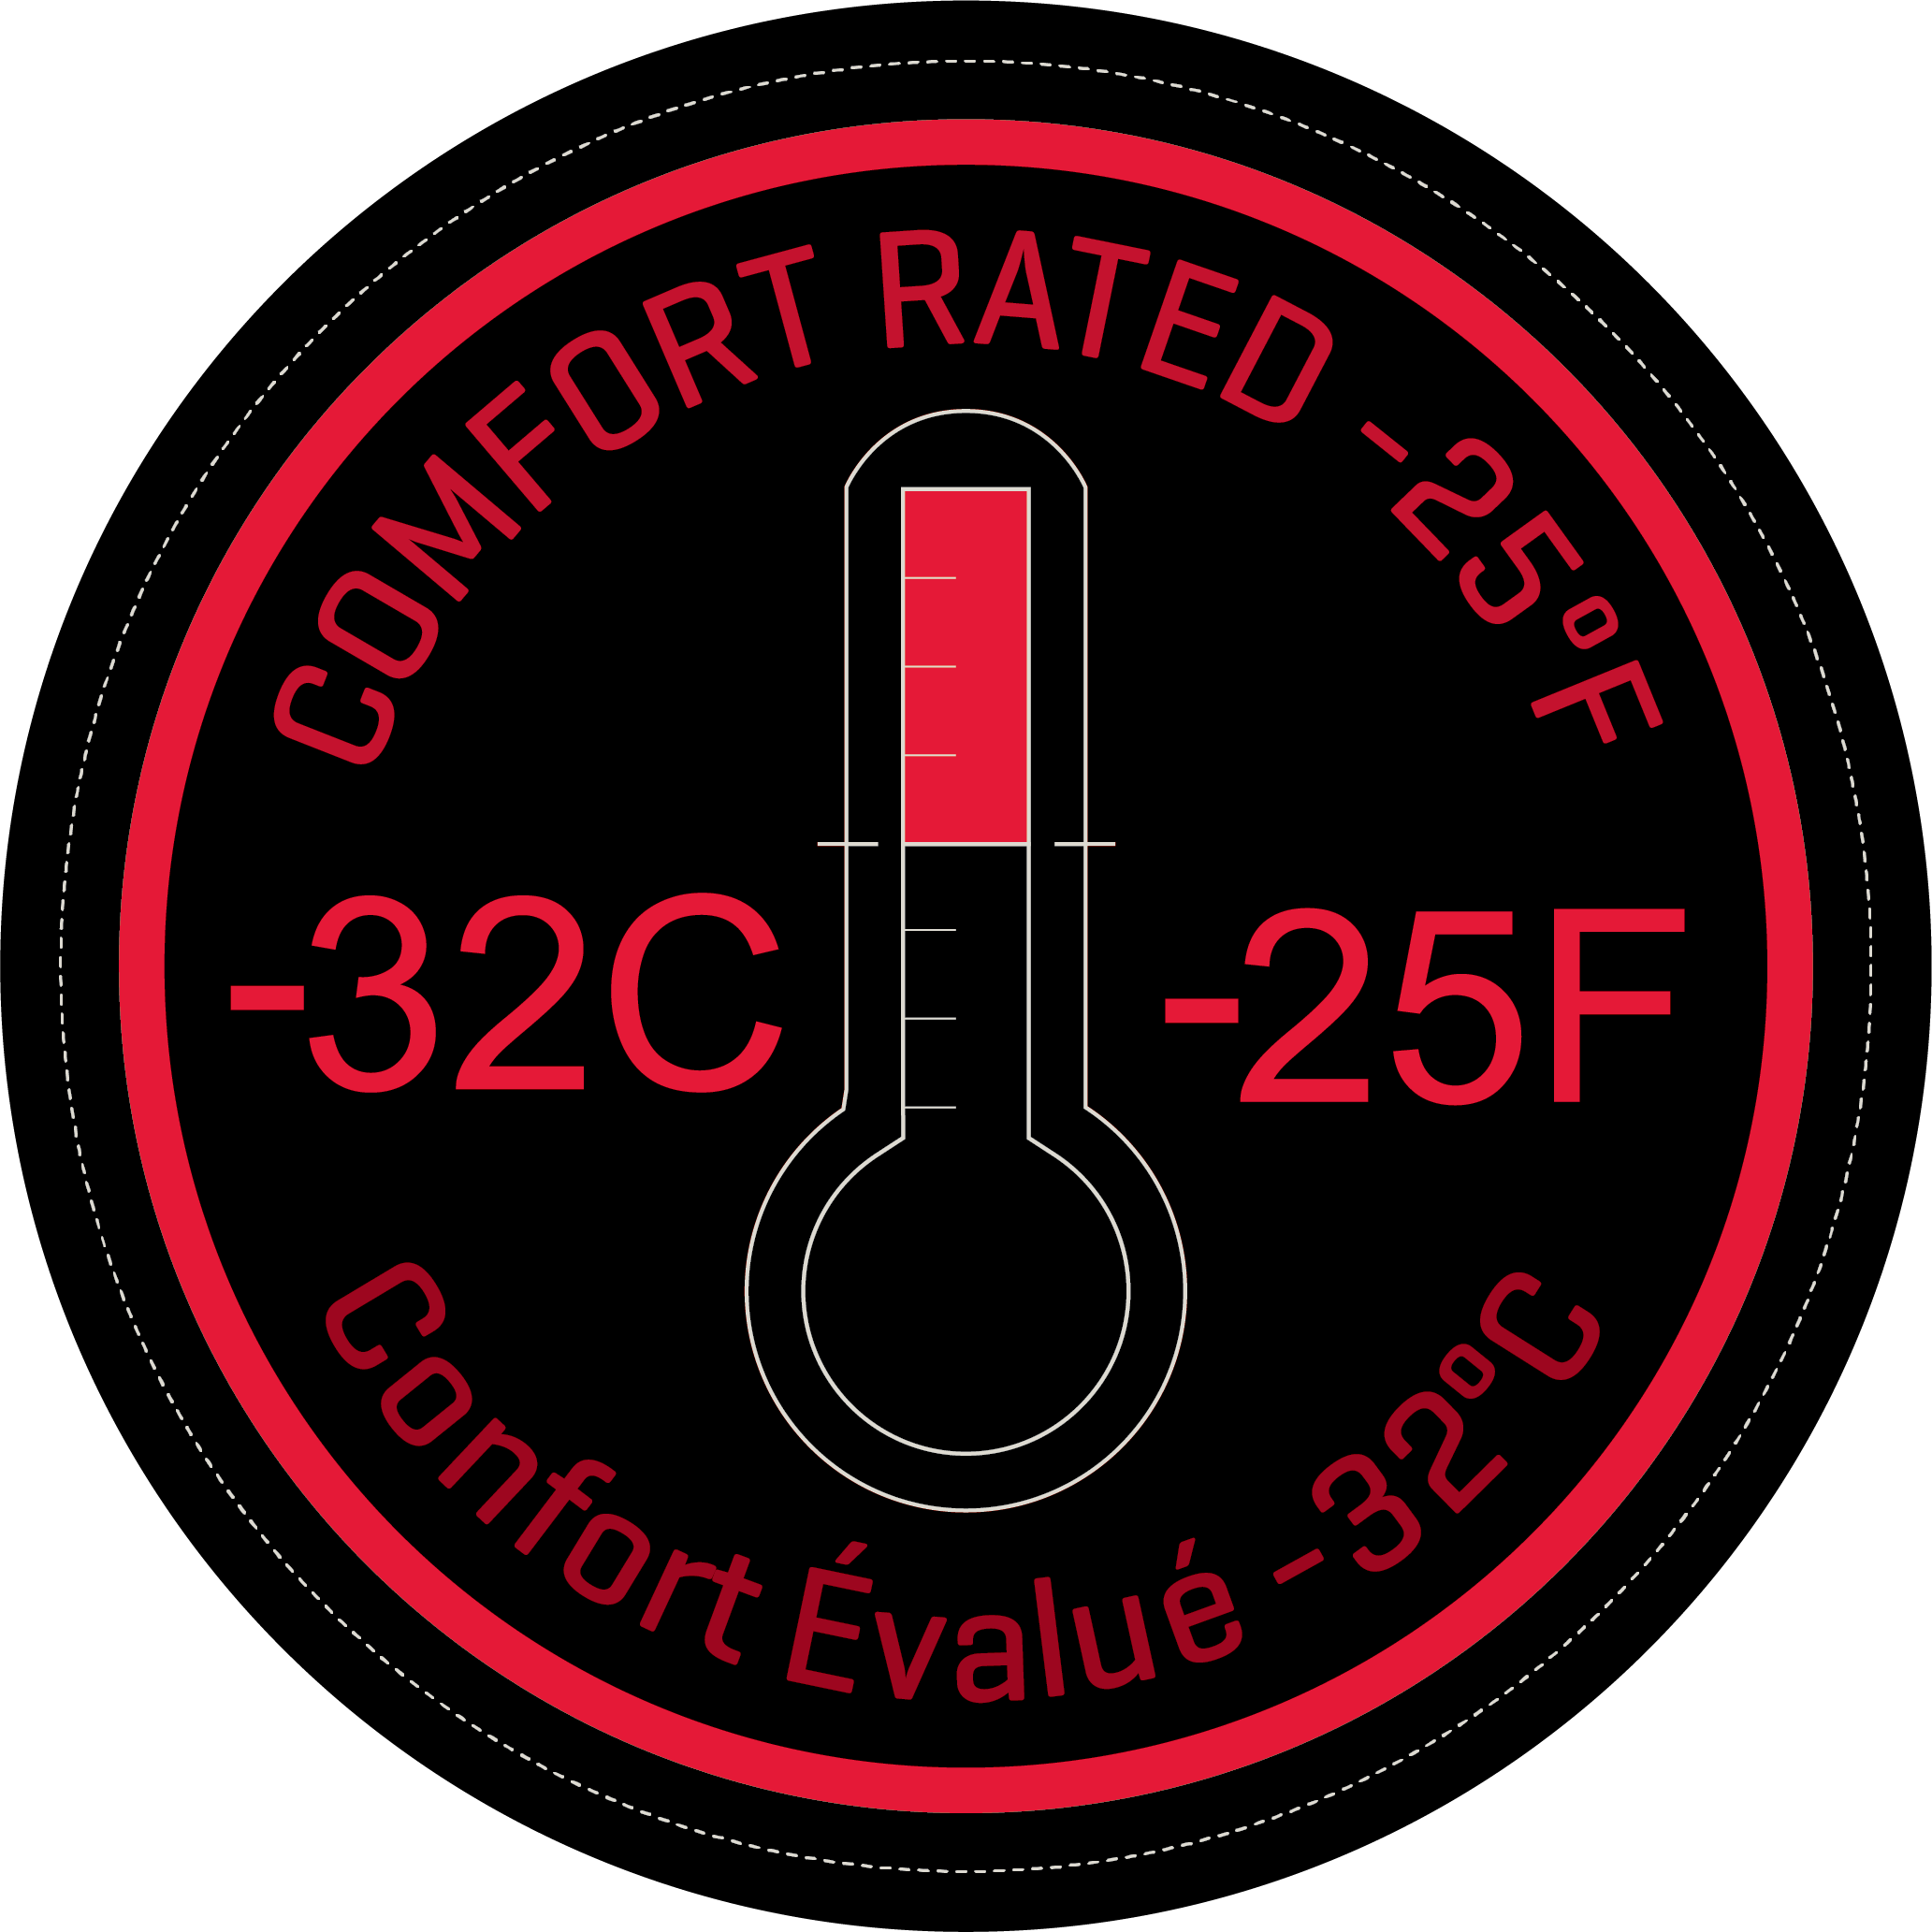 Comfort Rated -32C/-25F